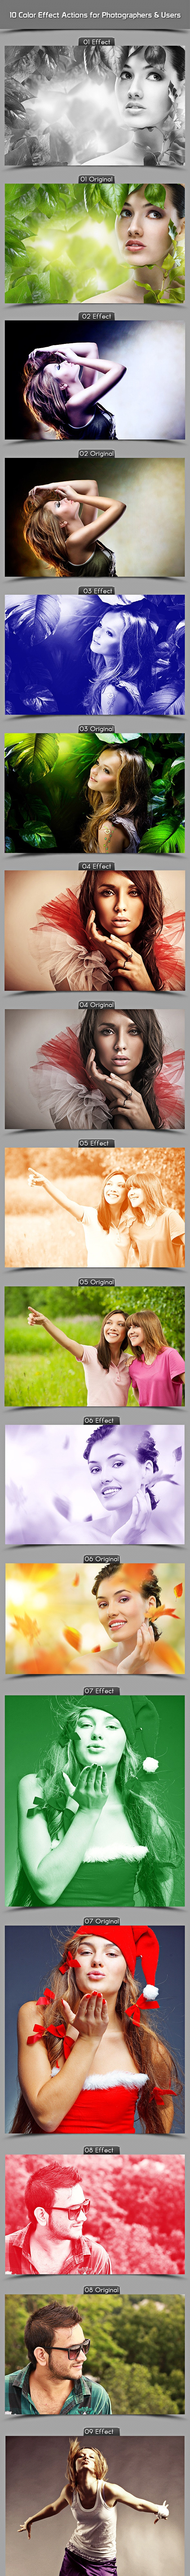 10 Color Effect Actions For Photographers & Users - Actions Photoshop